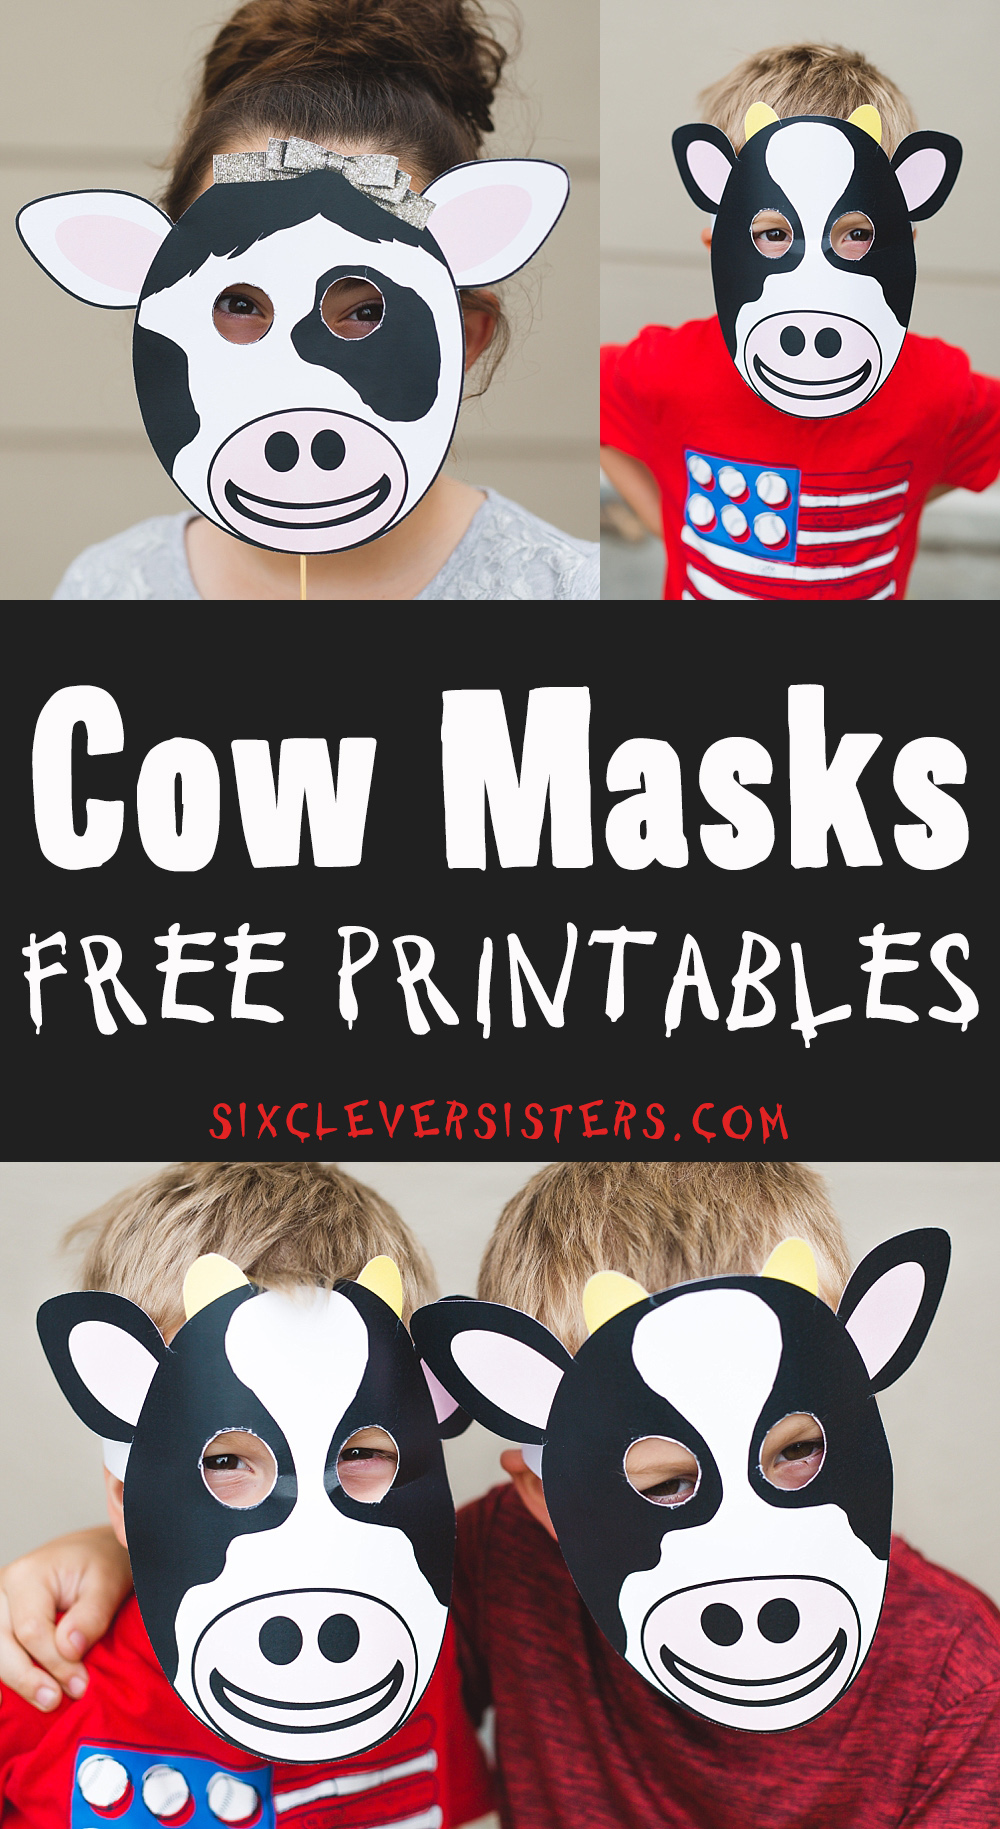 photo relating to Free Printable Cow Mask titled Chick Fil A Cow Mask - 6 Smart Sisters